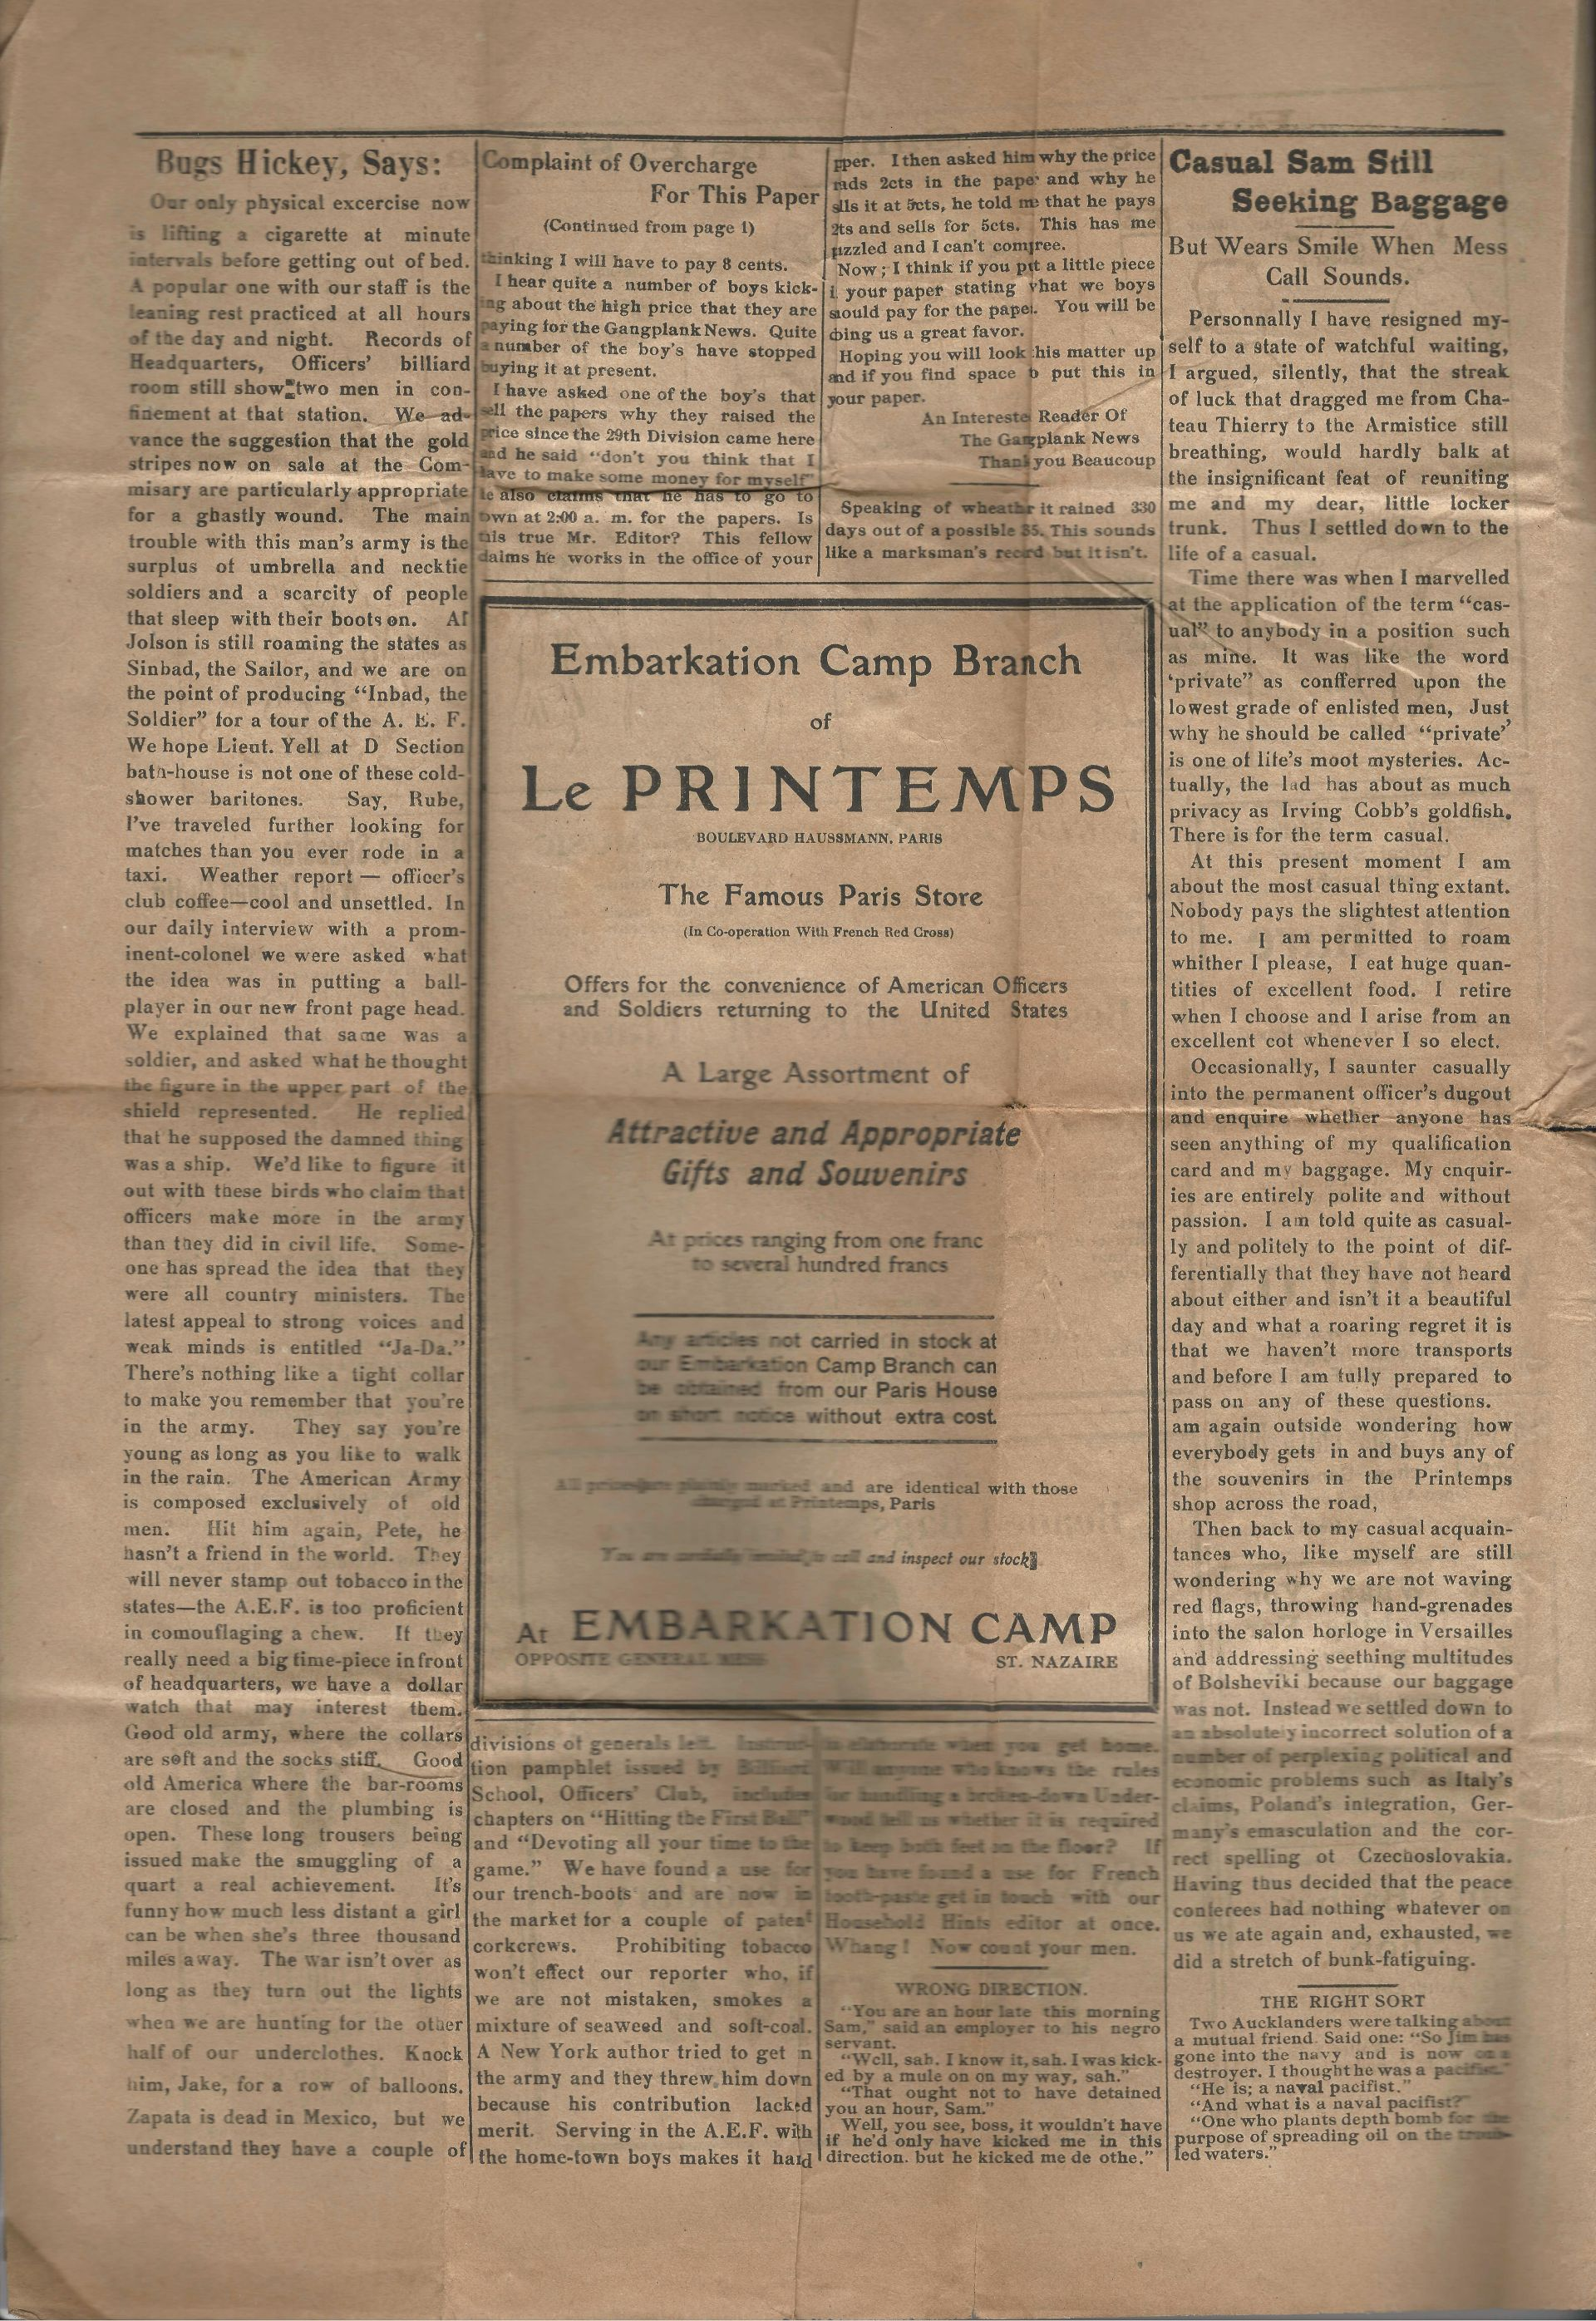 The Gangplank News - Newspaper - No. 31 - Embarkation Camp - St. Nazaire, France - May 3, 1919 - Page 4